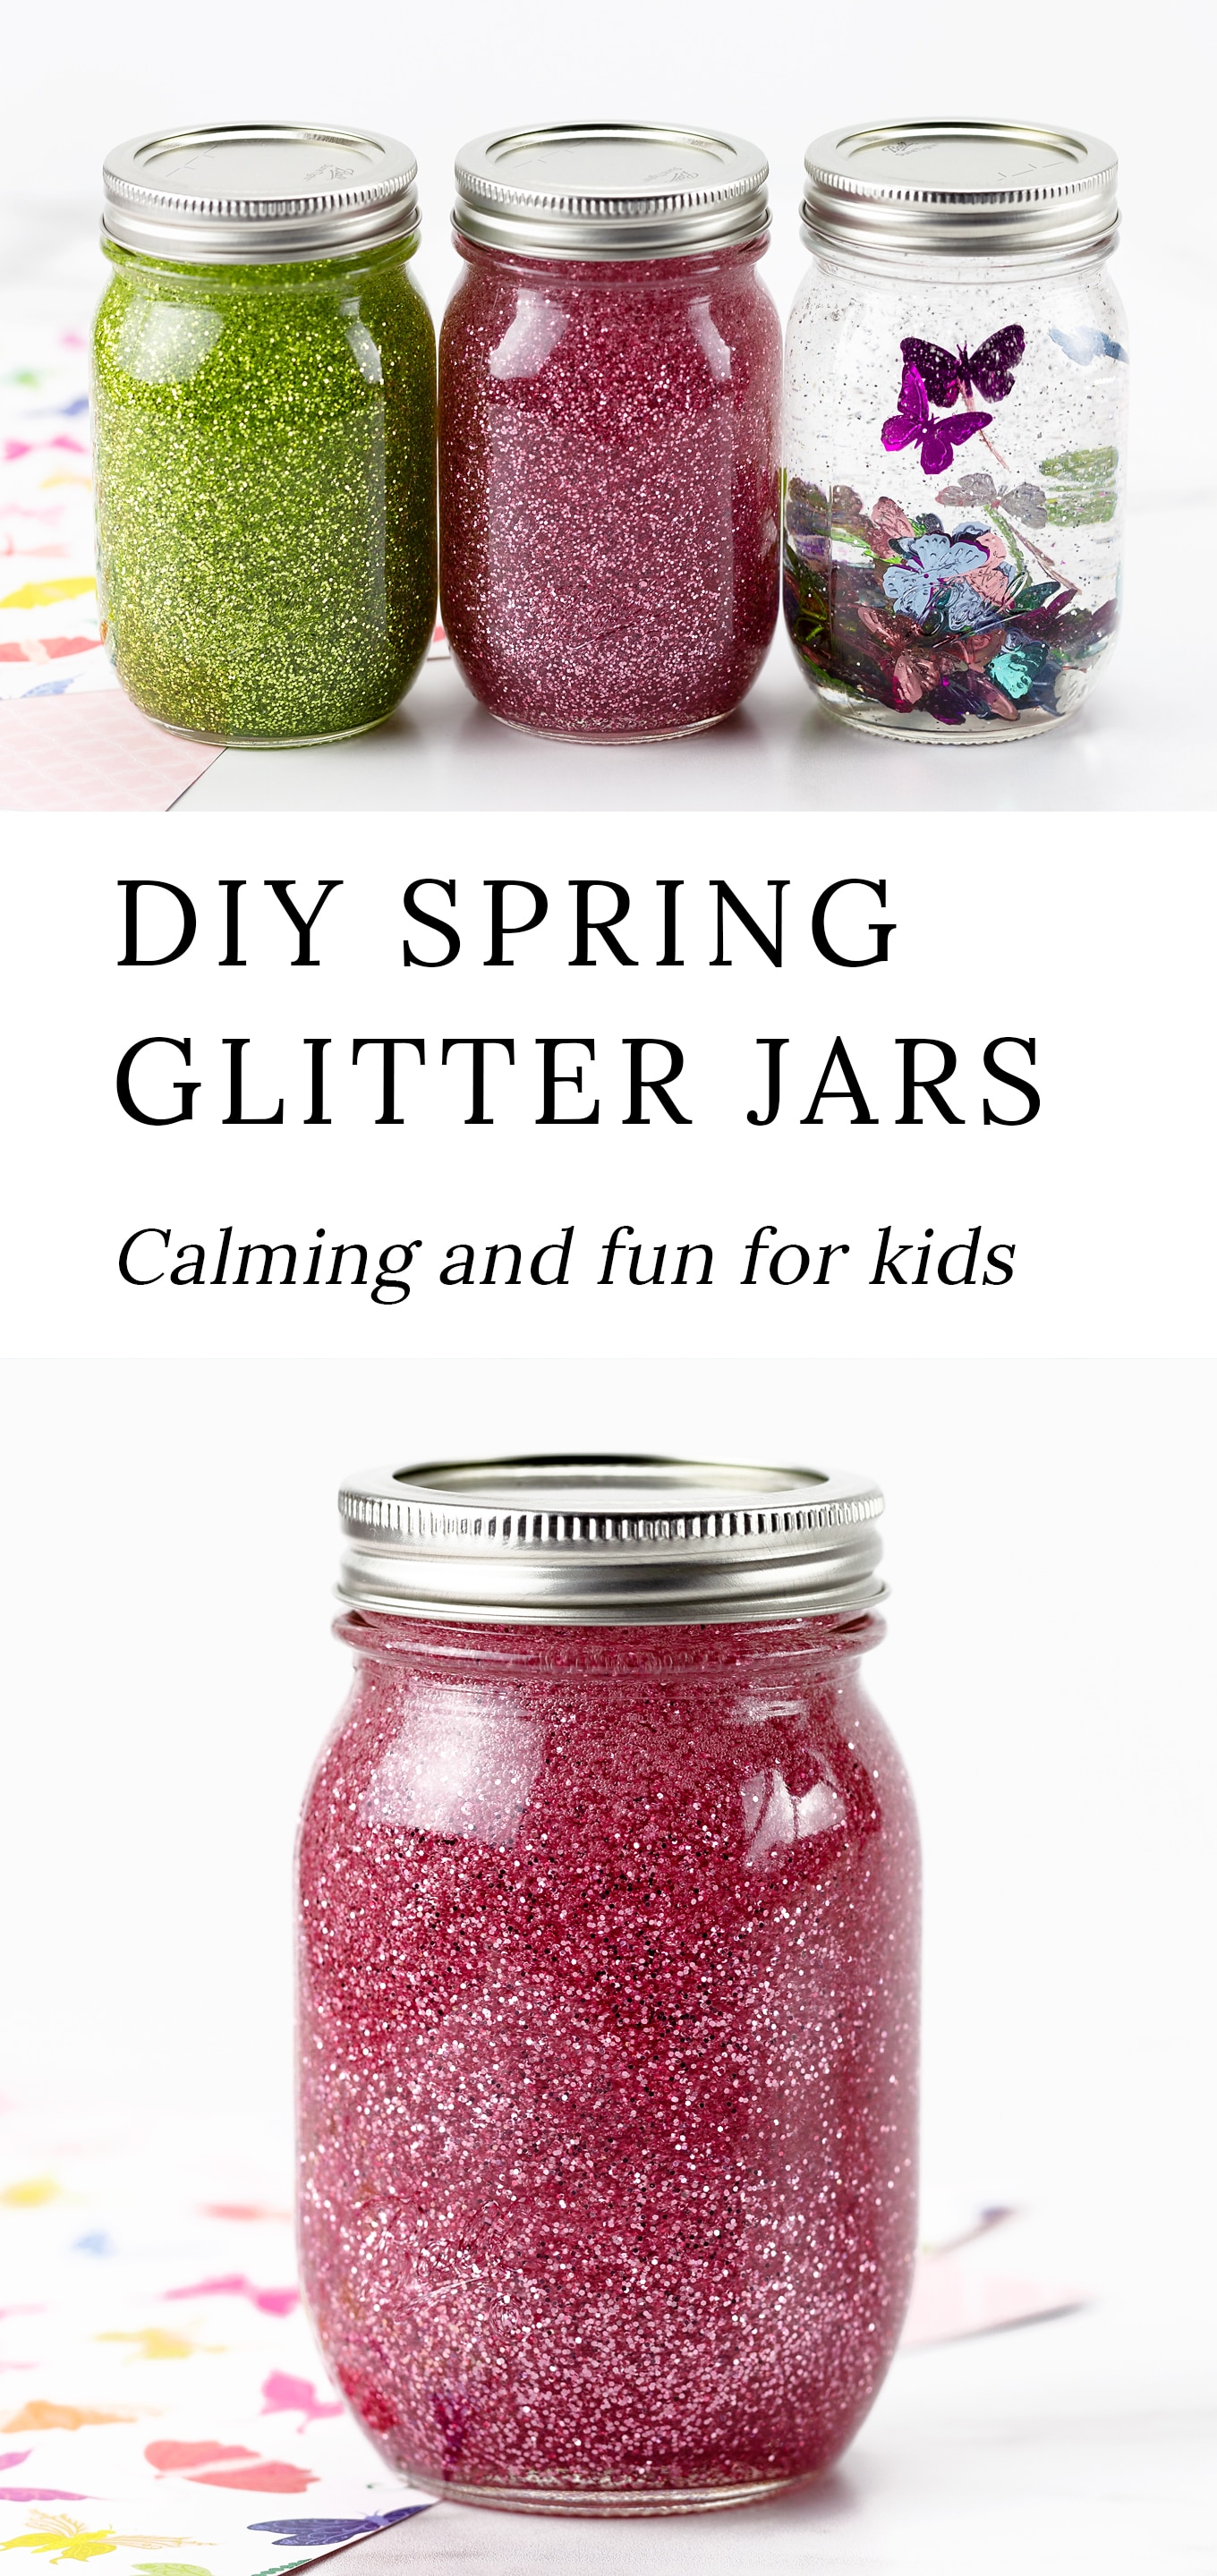 Follow along with our step-by-step directions and video tutorial to create these beautiful and calming Spring Glitter Jars! #glitterjars #spring #kidscrafts via @firefliesandmudpies